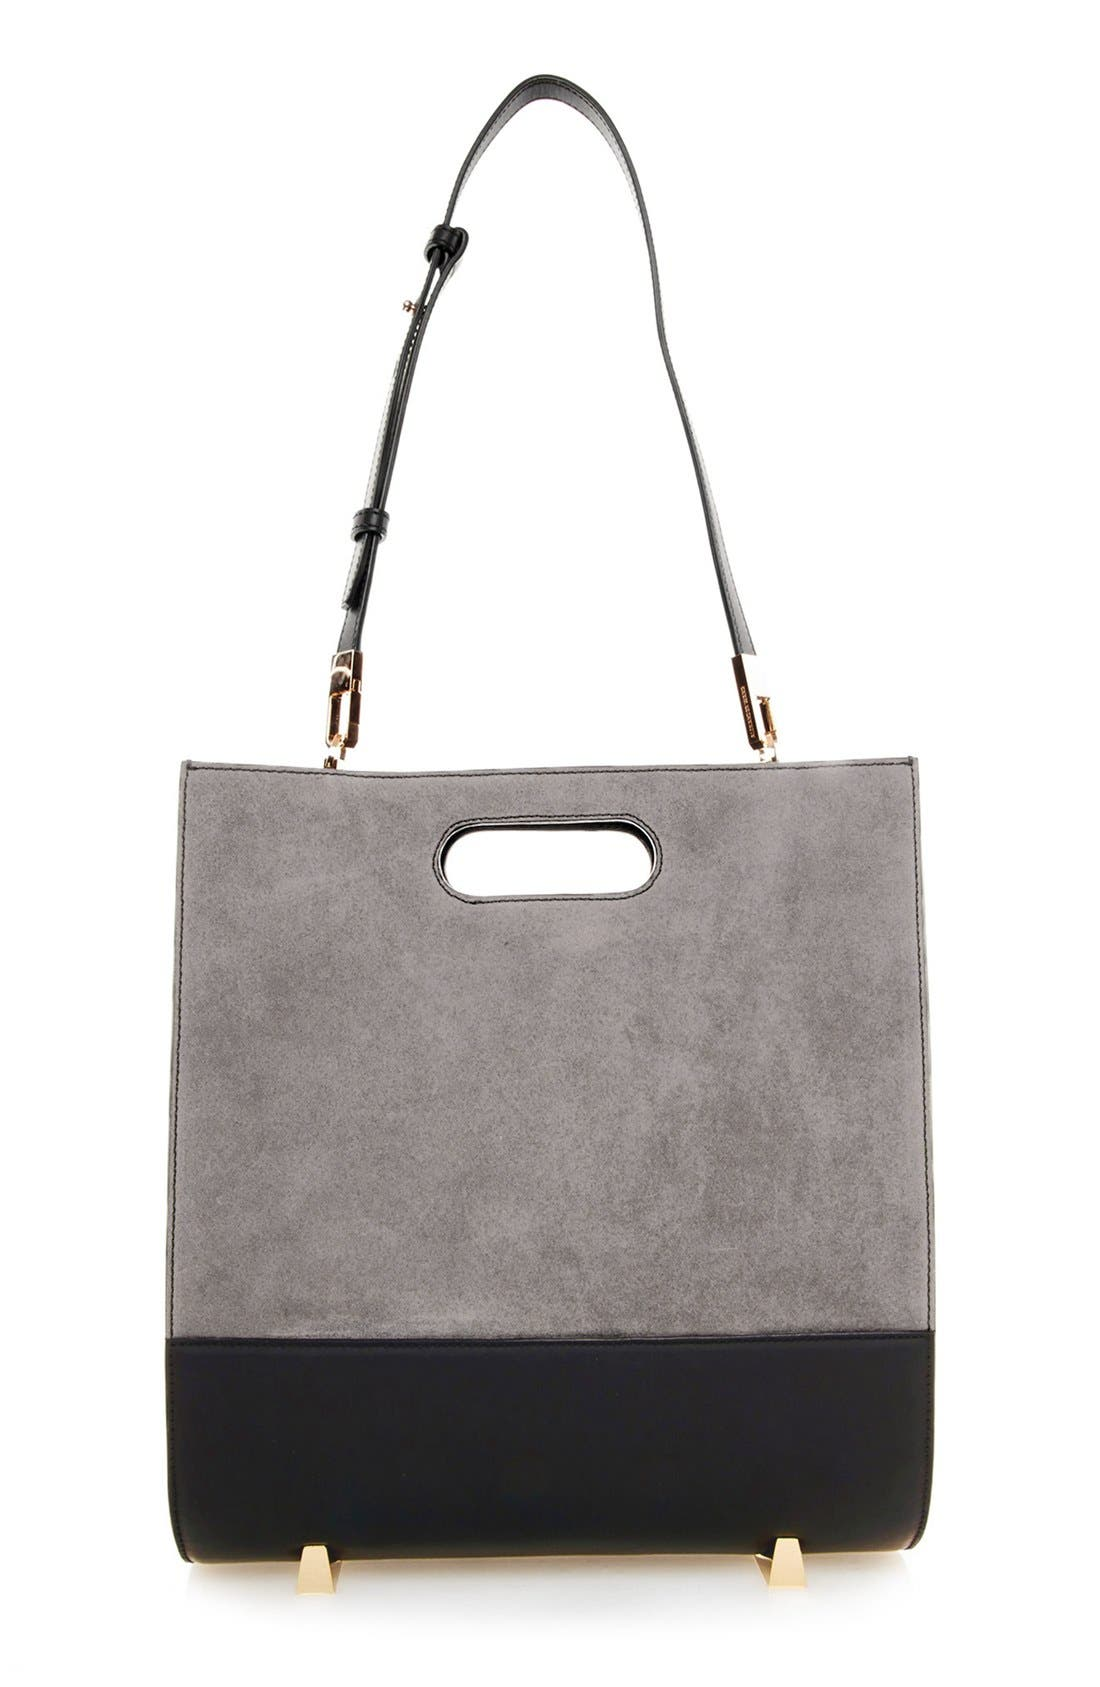 Alternate Image 1 Selected - Alexander Wang 'Chastity' Suede Tote